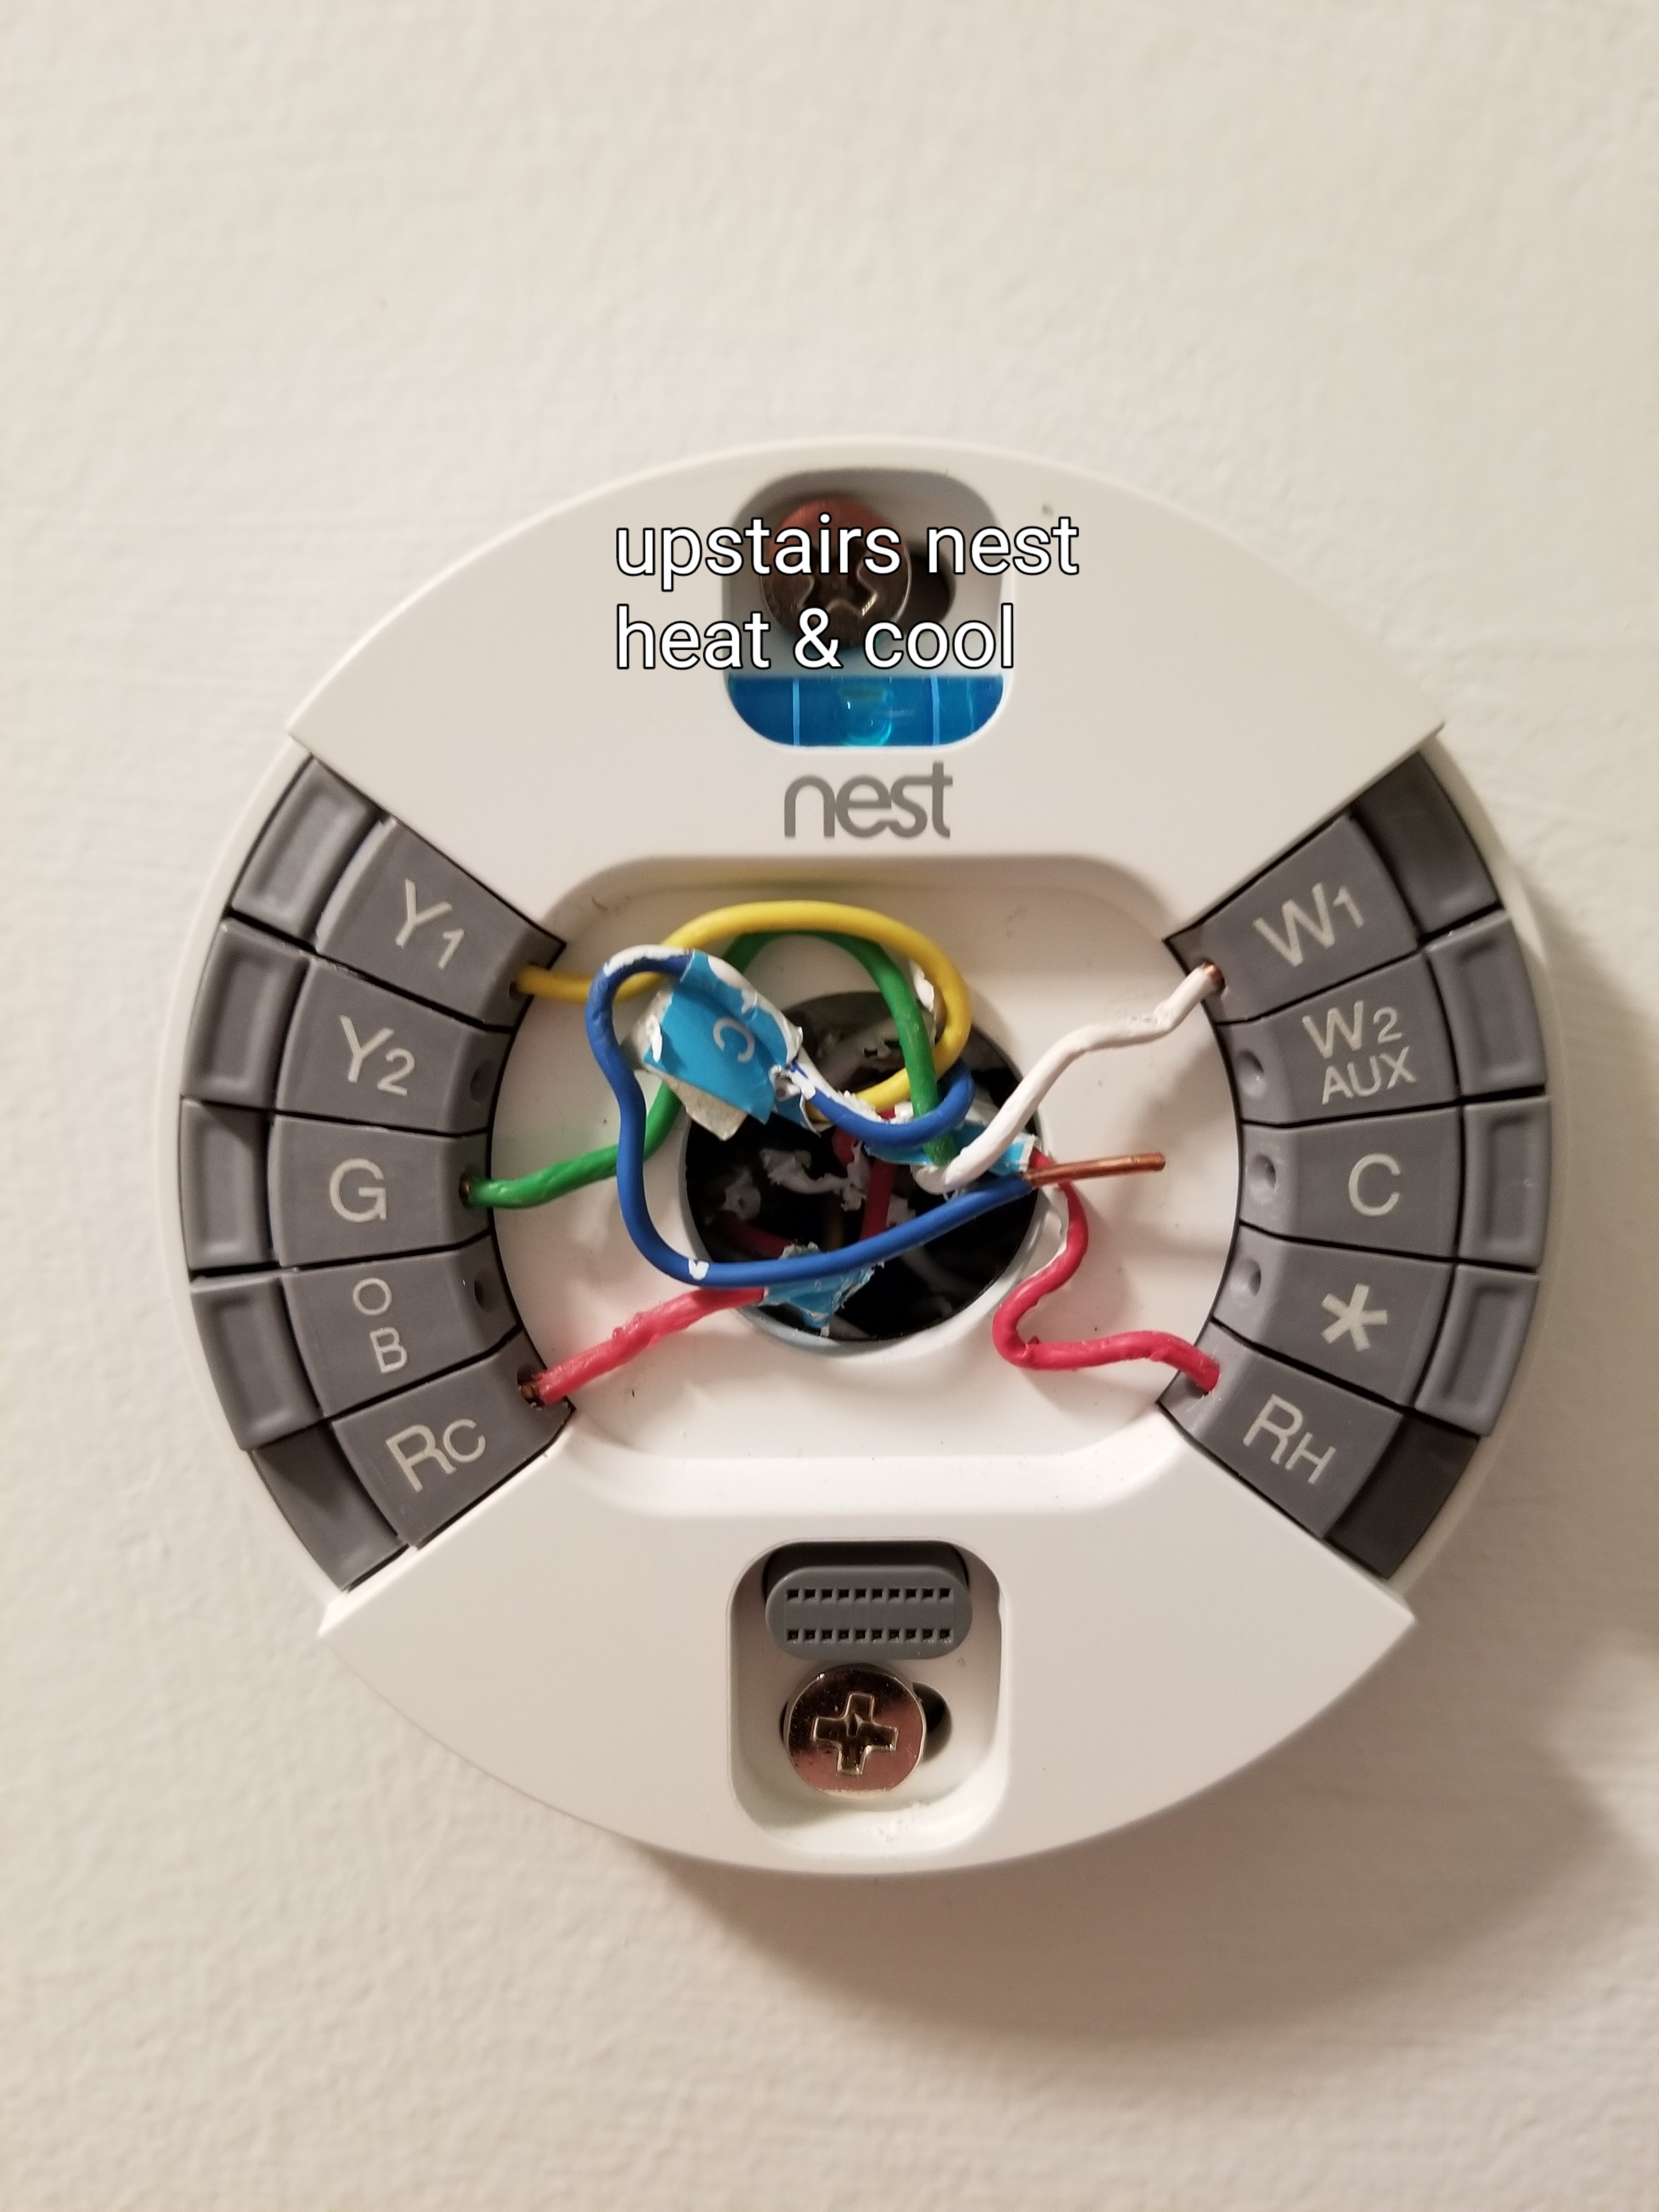 My nest thermostats are not recharging  They have been